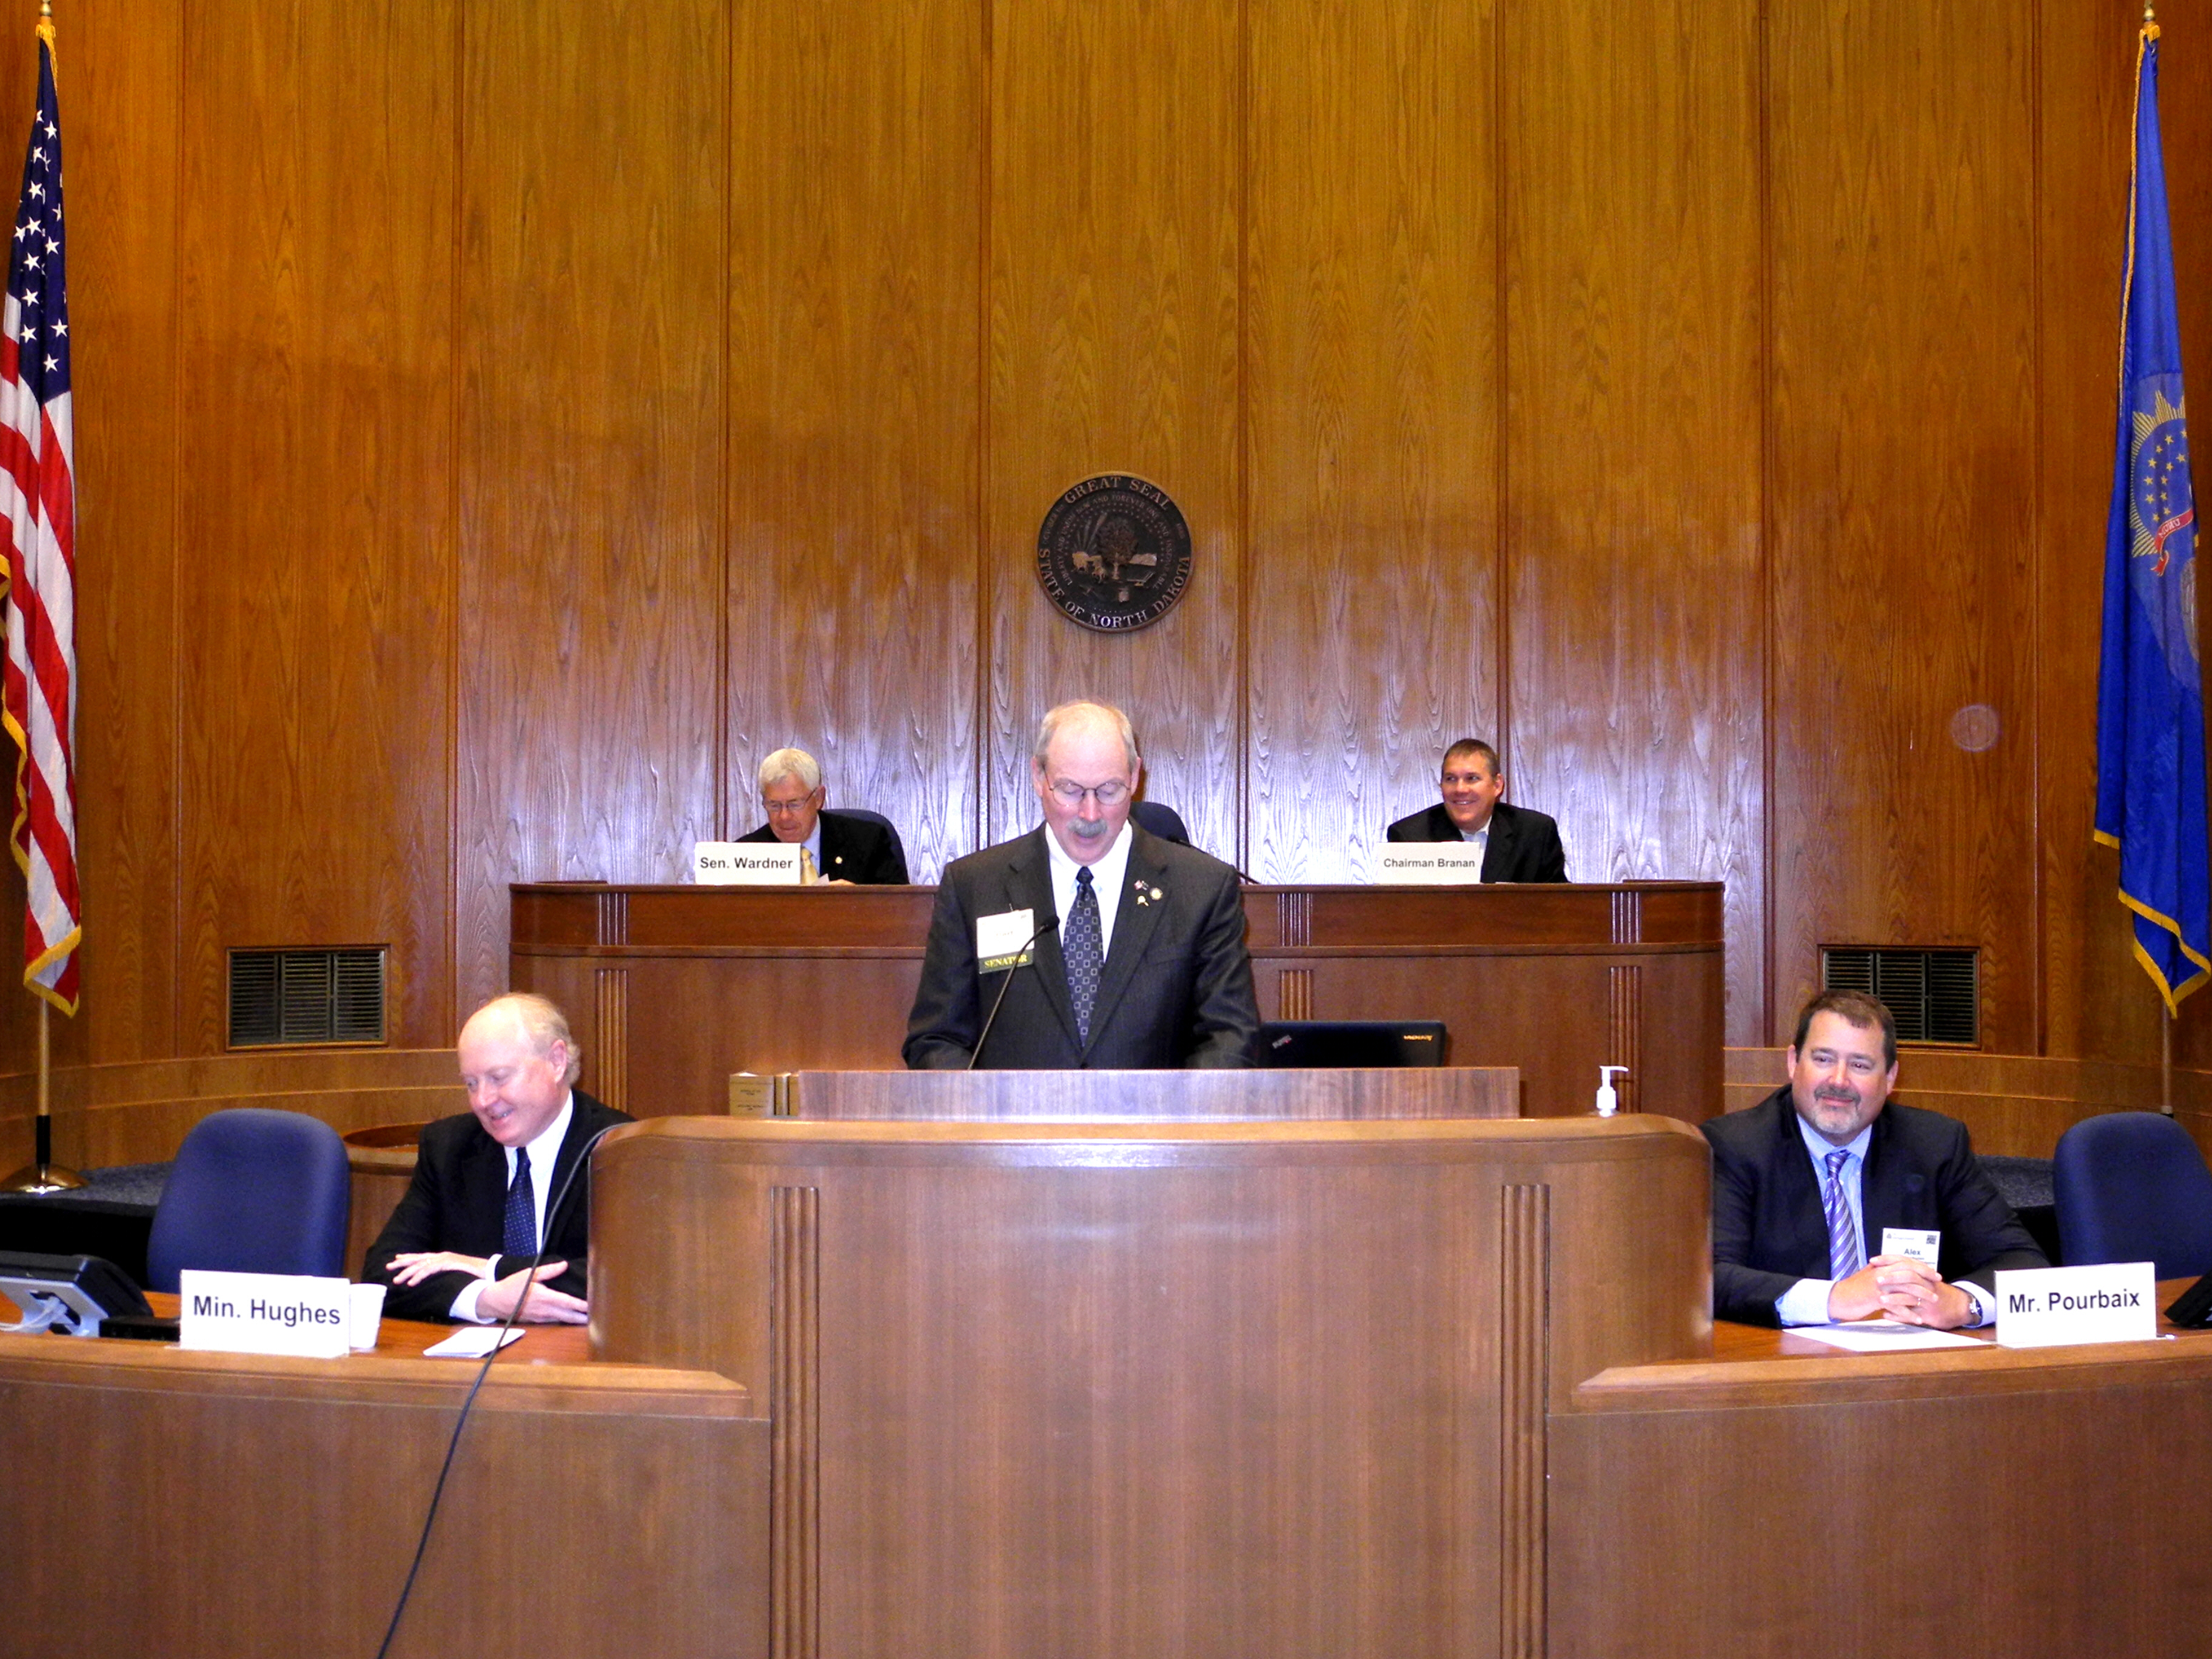 Alaska Senator Bert Stedman presides over the Energy Council's 2013 State and Provincial Trends in Energy and the Environment Conference General Session on Friday, June 21, in the North Dakota State Capitol.  Senator Stedman introduced the Alberta Minister of Energy, the Honourable Ken Hughes (far left) and Mr. Alex Pourbaix, President of TransCanada Energy and Oil Pipelines (far right), both of whom addressed the conferees.  Seated behind Senator Stedman are North Dakota Senator Rich Wardner, Energy Council Vice President for State and Provincial Trends (left) and Oklahoma Senator Cliff Branan, Chairman of the Center for Legislative Energy and Environmental Research (right).